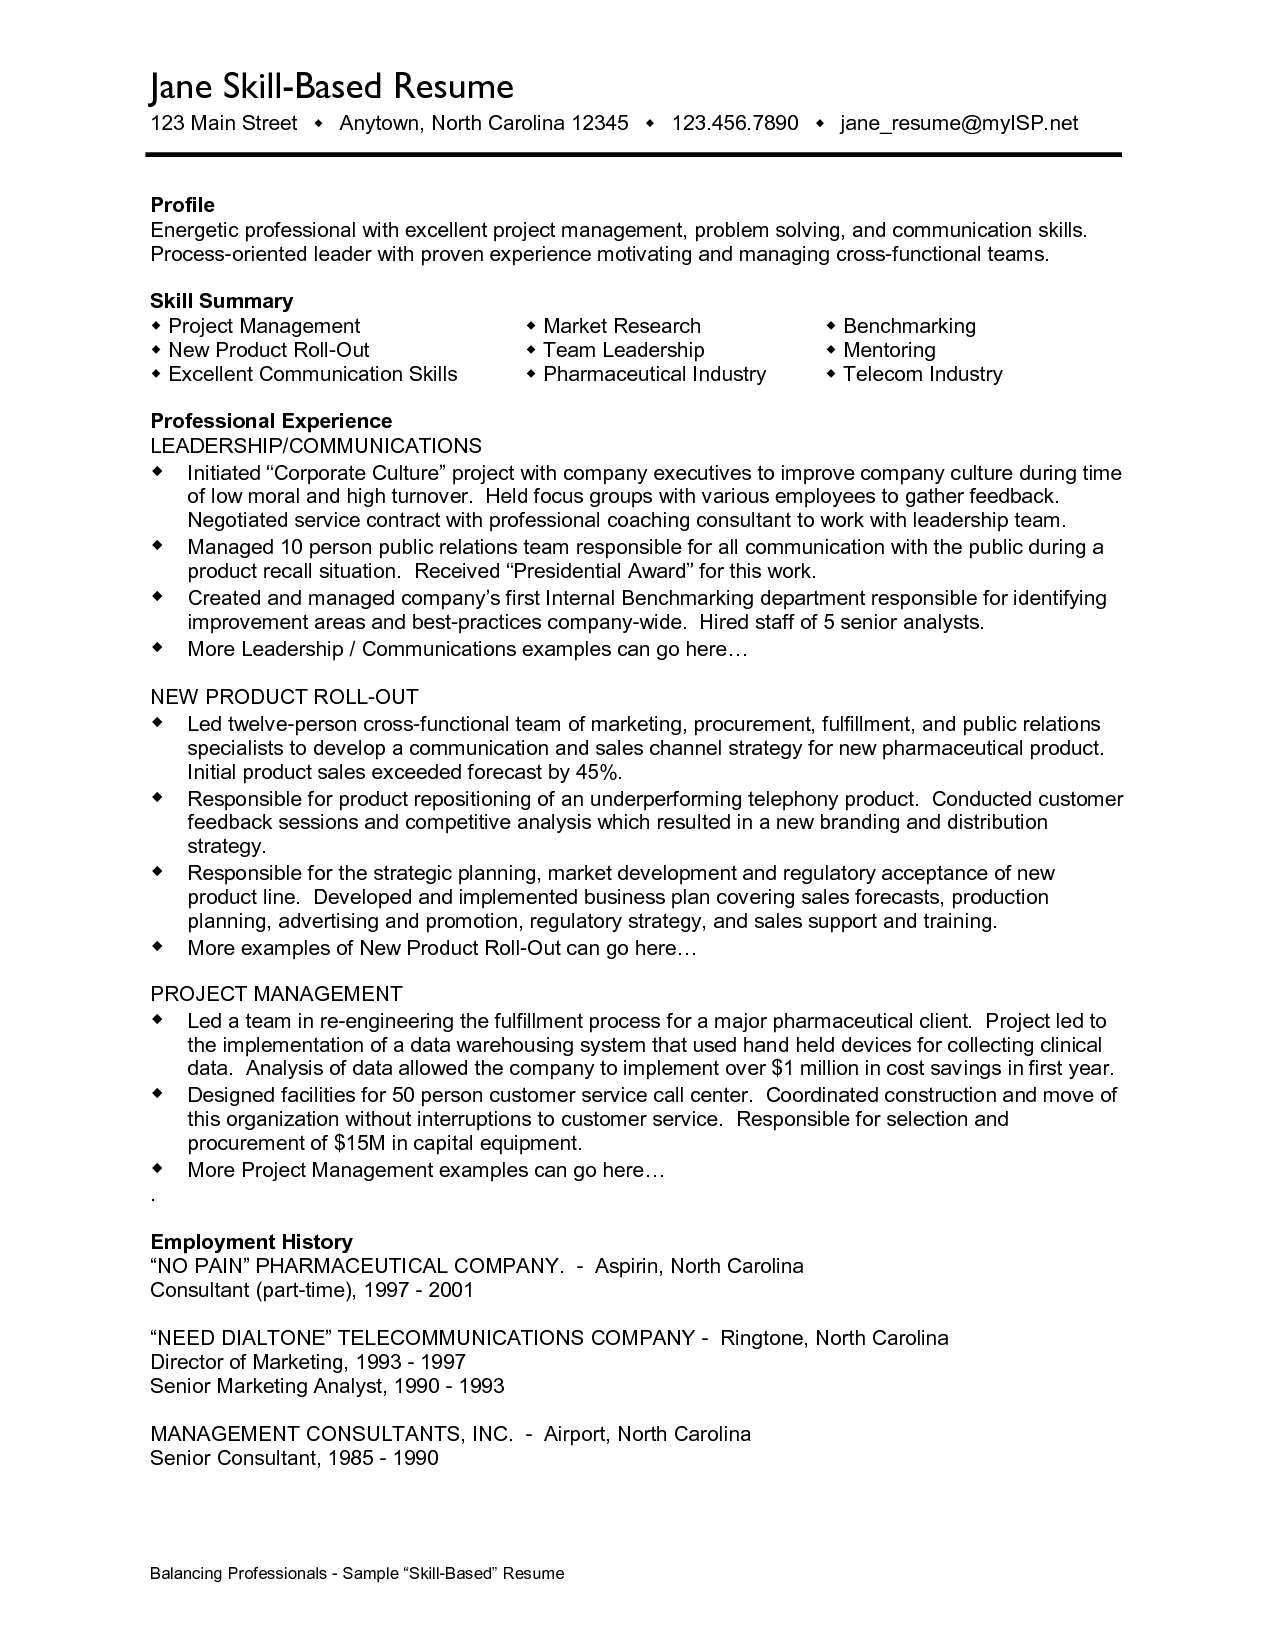 skill based resume examples Professional Skills Sample